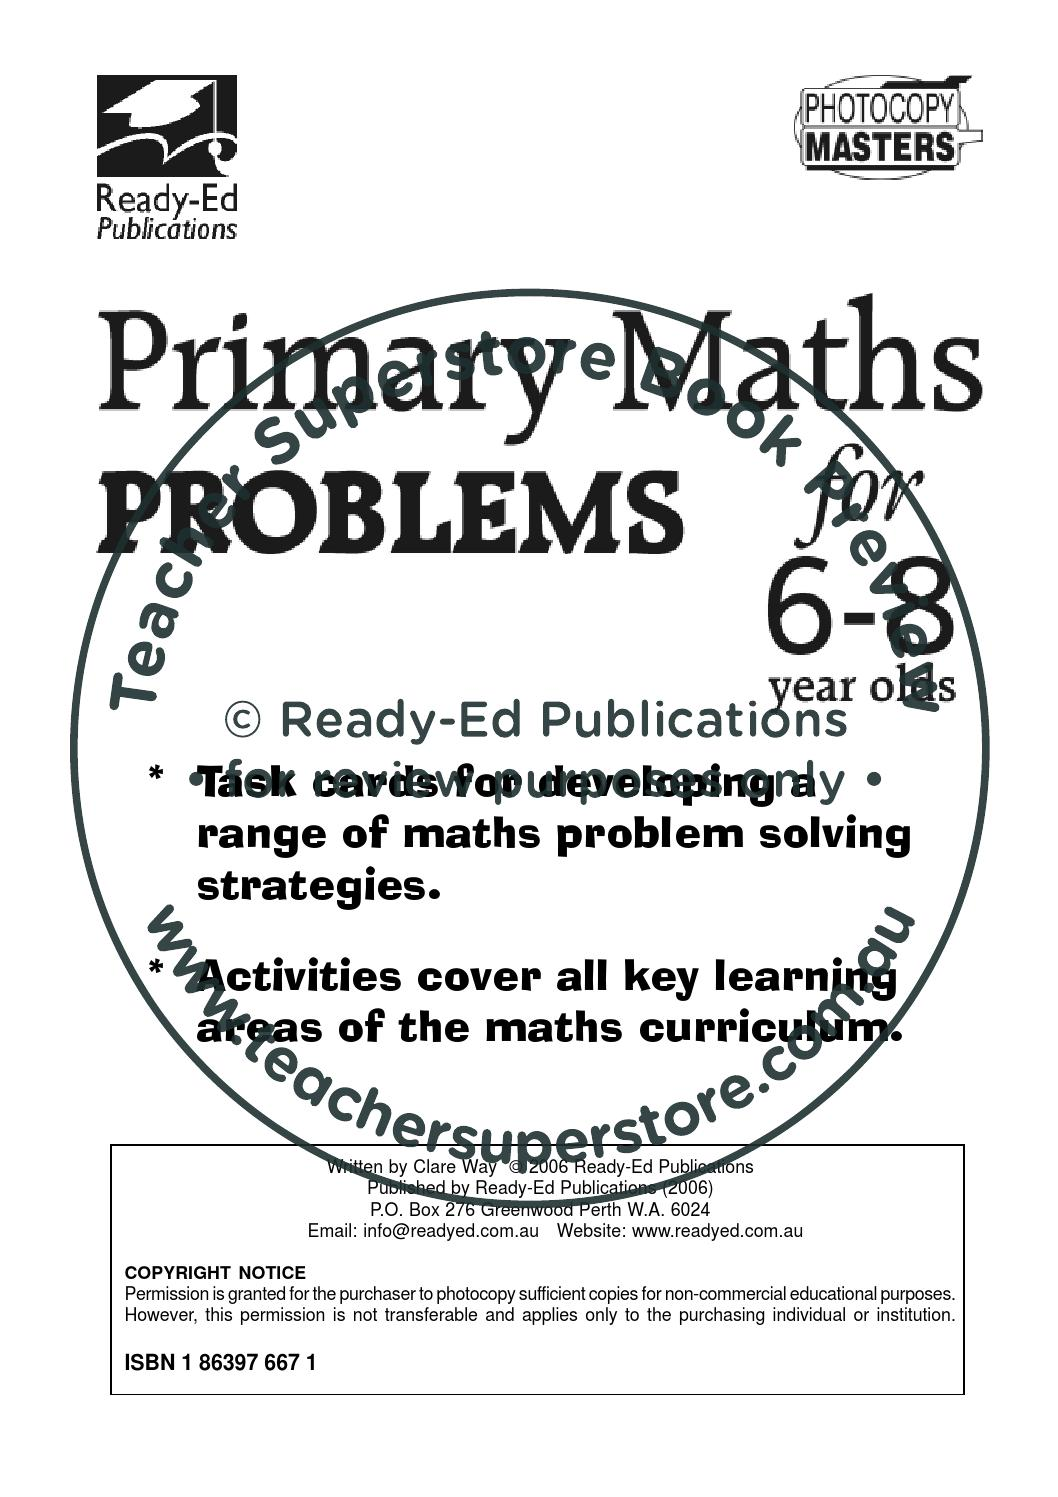 Primary Maths Problems Series: Book 1 by Teacher